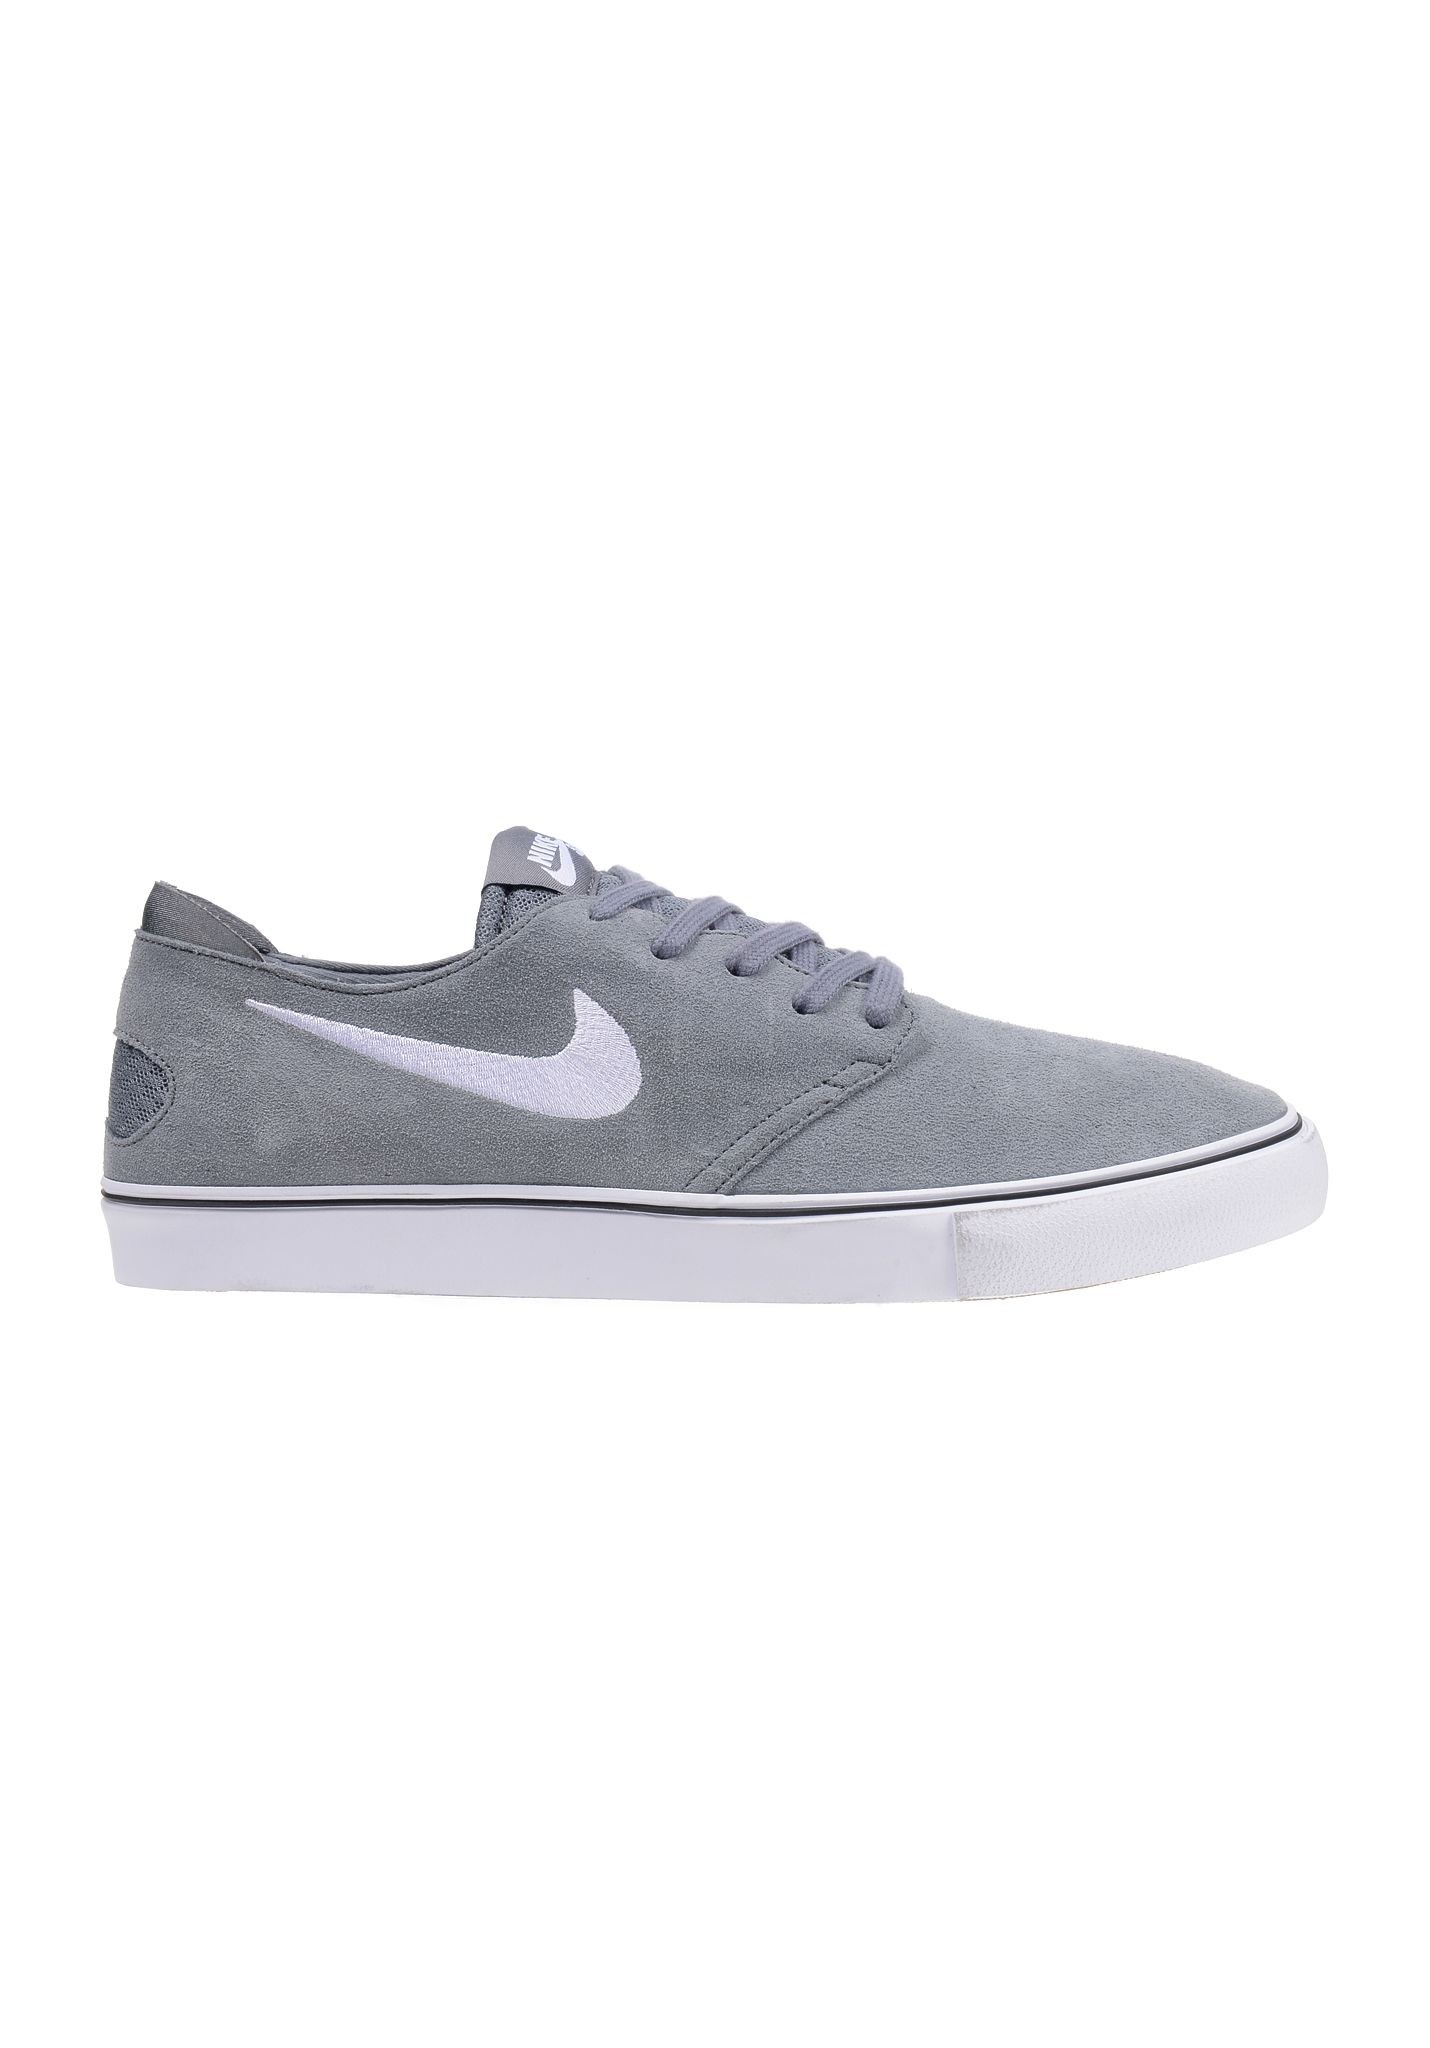 nike sb grise homme